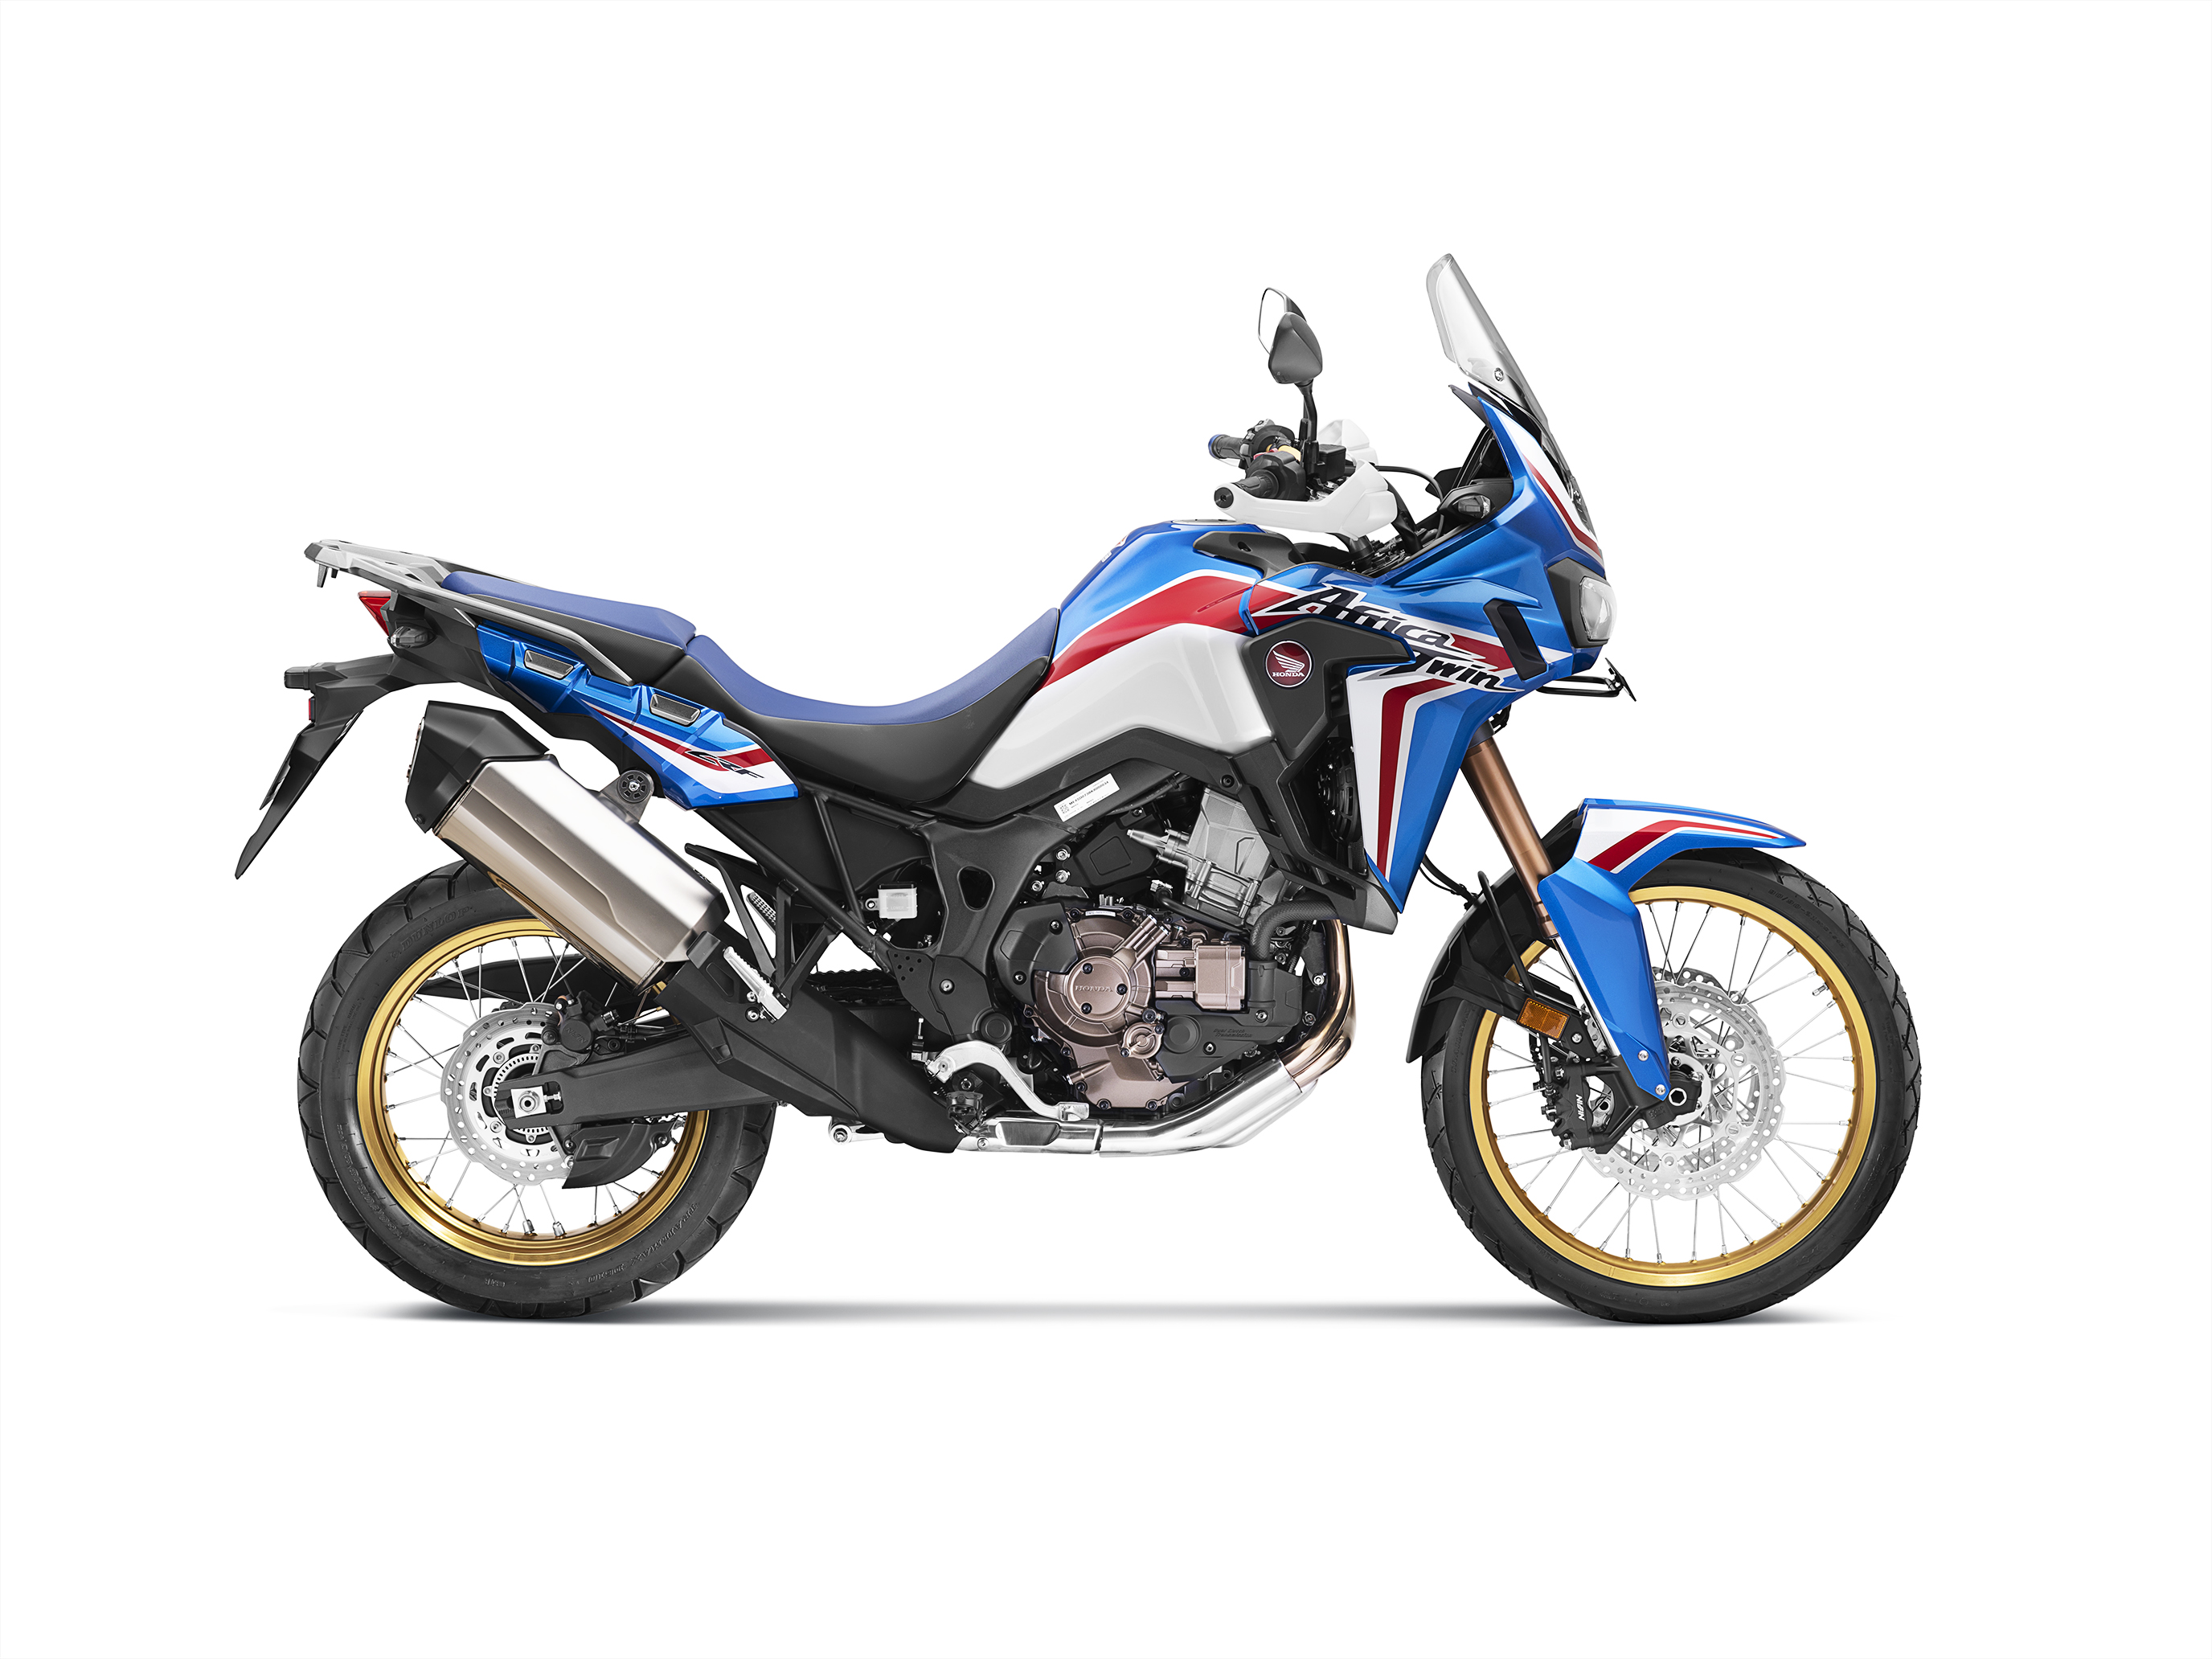 2019 honda africa twin india launch done know details. Black Bedroom Furniture Sets. Home Design Ideas